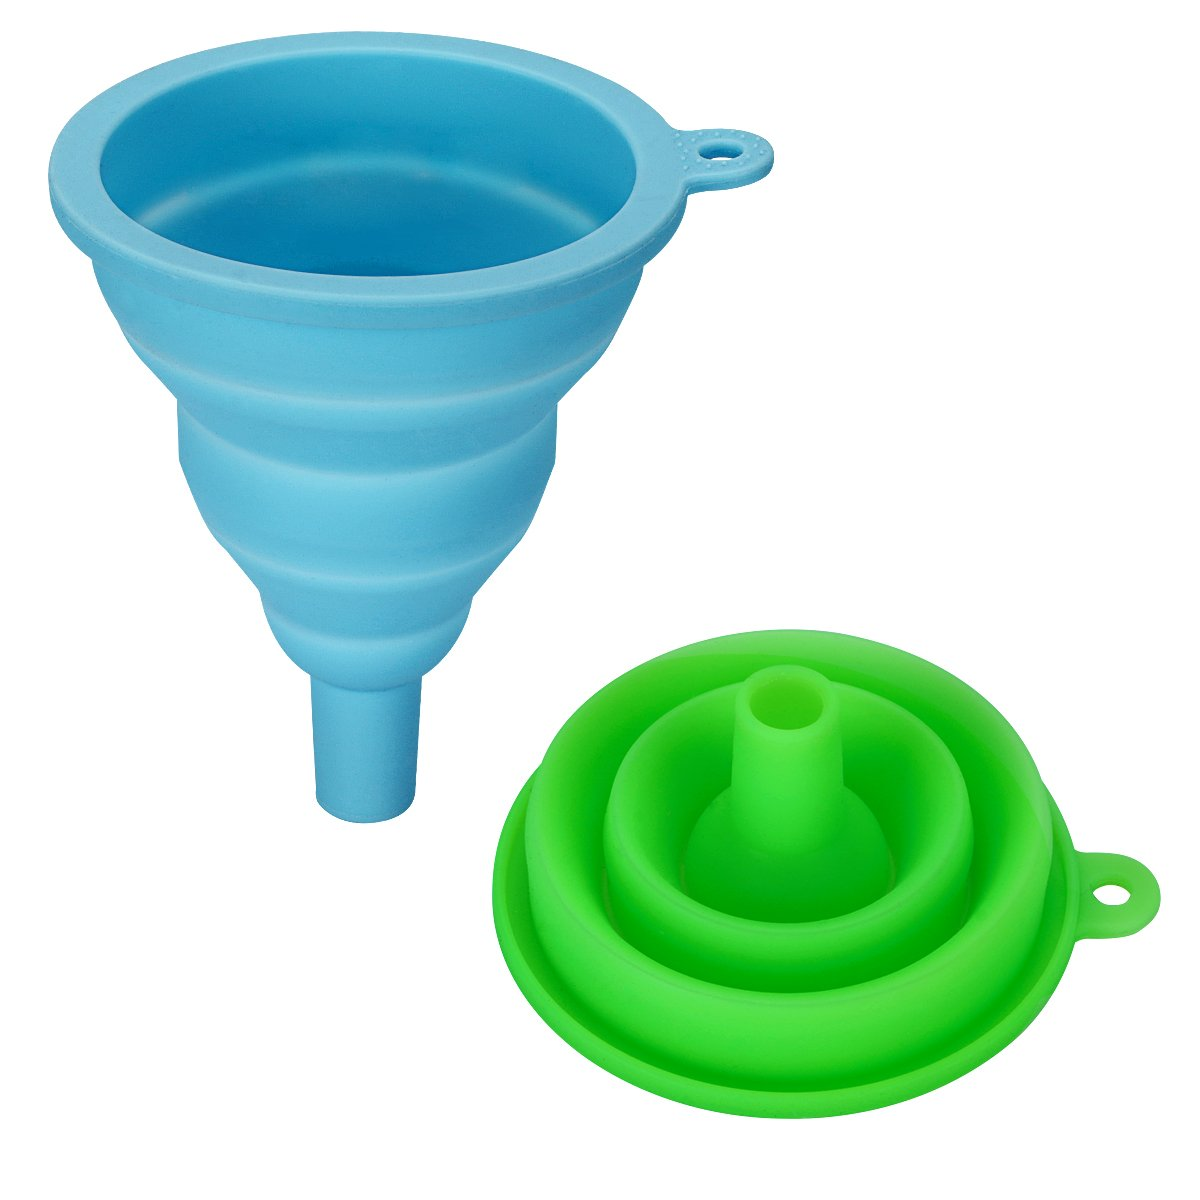 INMAKER Collapsible Funnel Set, 2 Pack, Small, Silicone Foldable Funnel for Water Bottle